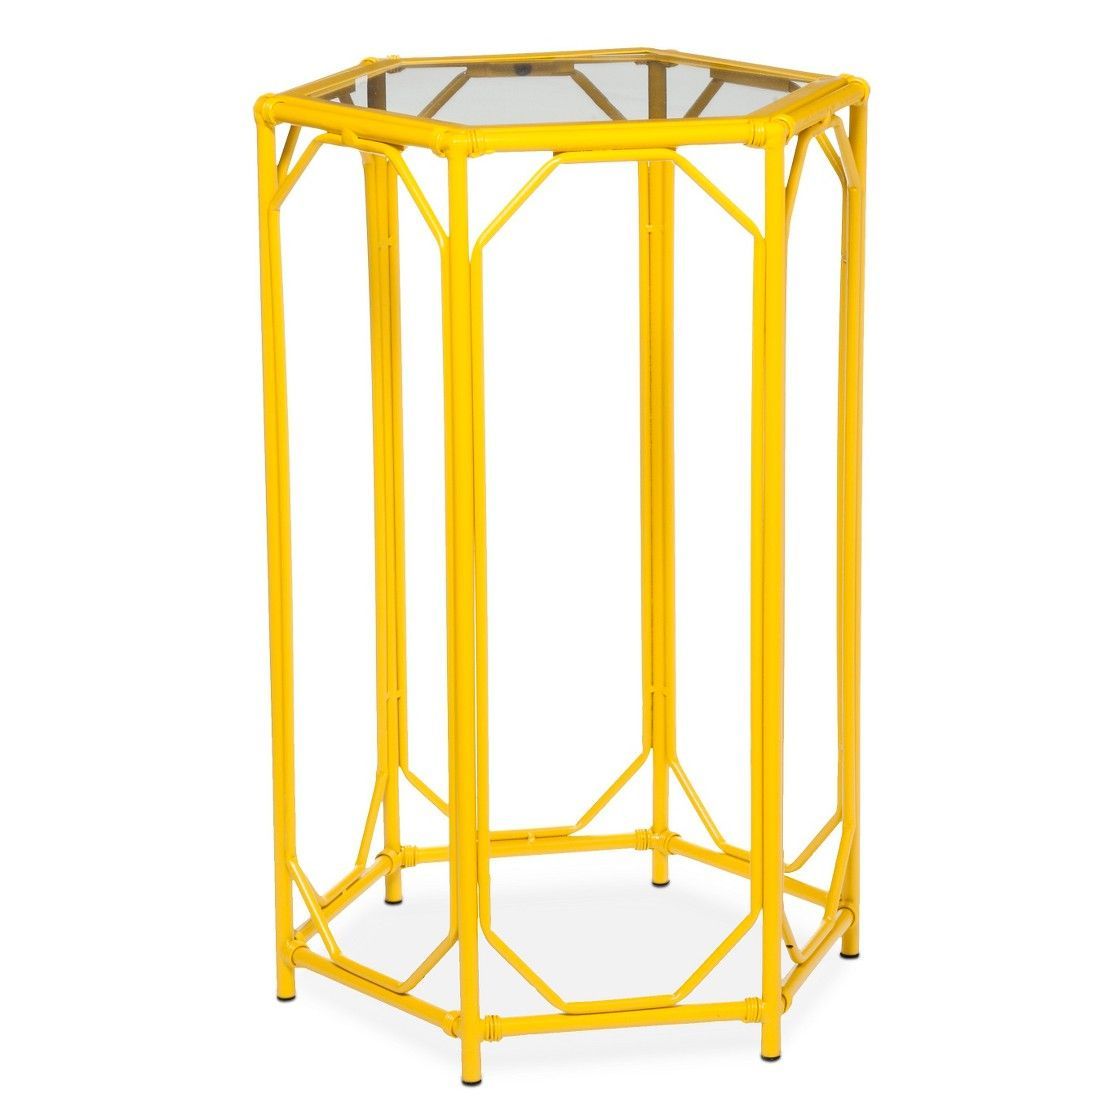 threshold bamboo motif accent table yellow wishlist home fretwork laptop side west elm wood bench wichita furniture bunnings swing set college room ideas end teal industrial cart